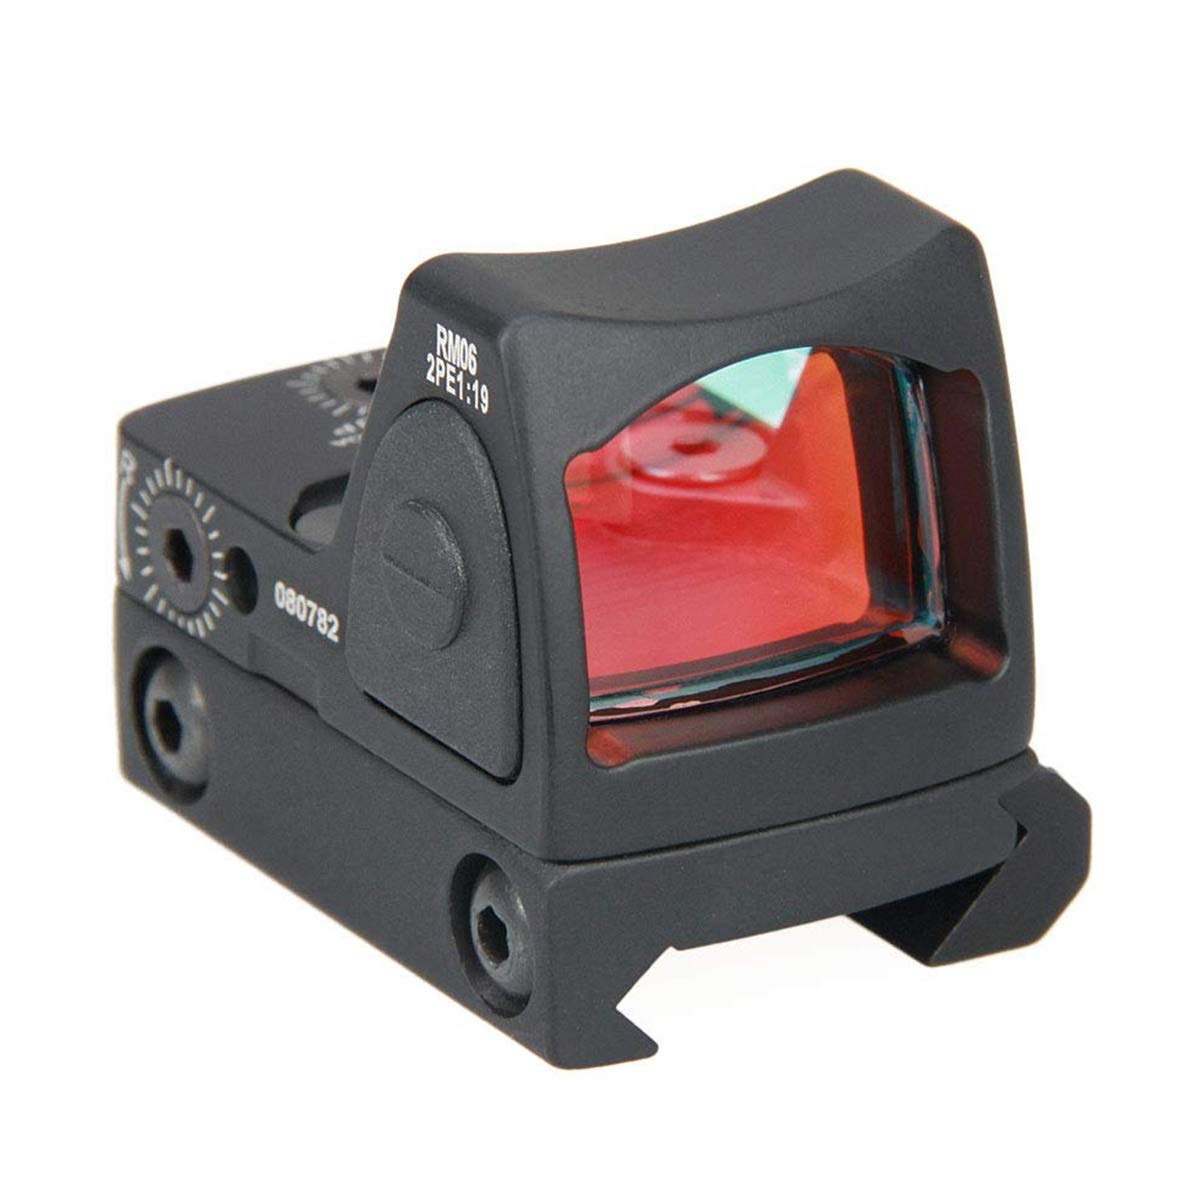 Red Dot Sight by ALZERO, RMR Type 3.25 MOA Adjustable Reflex Sight Pistol Scope 45mm Parts Set US(Black)